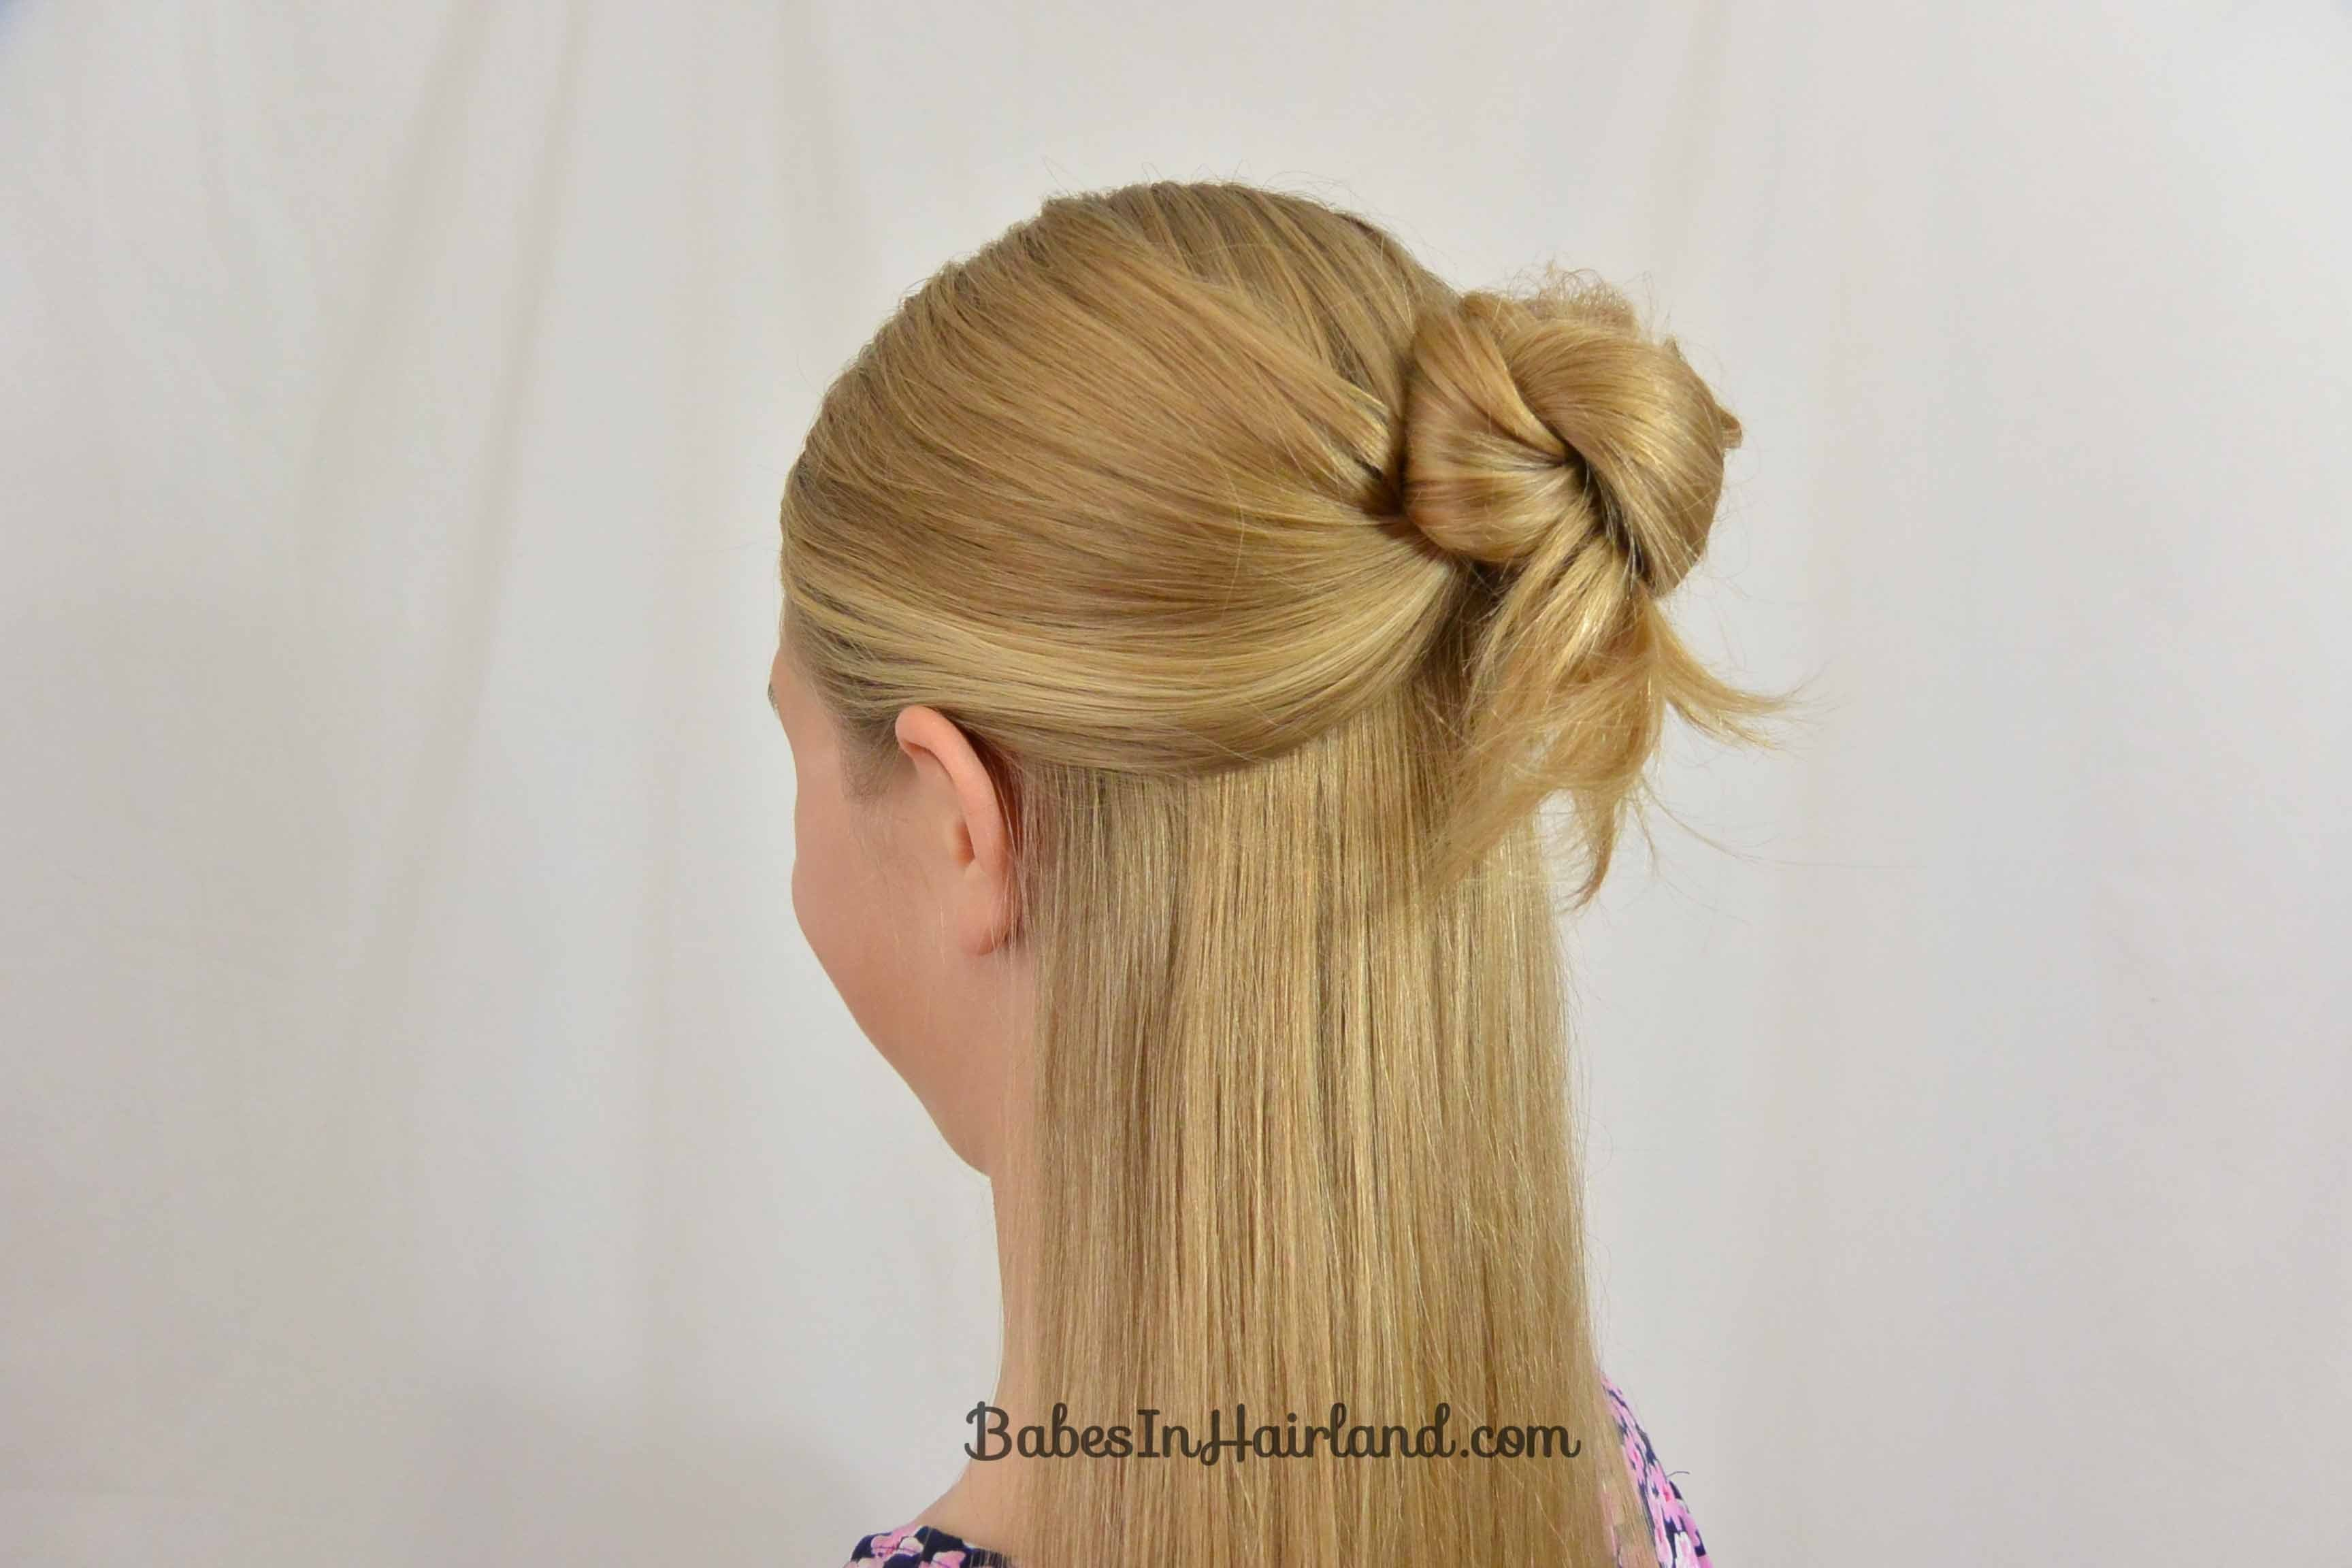 New Easy 1 Minute Knotted Hairstyle B*B*S In Hairland Ideas With Pictures Original 1024 x 768